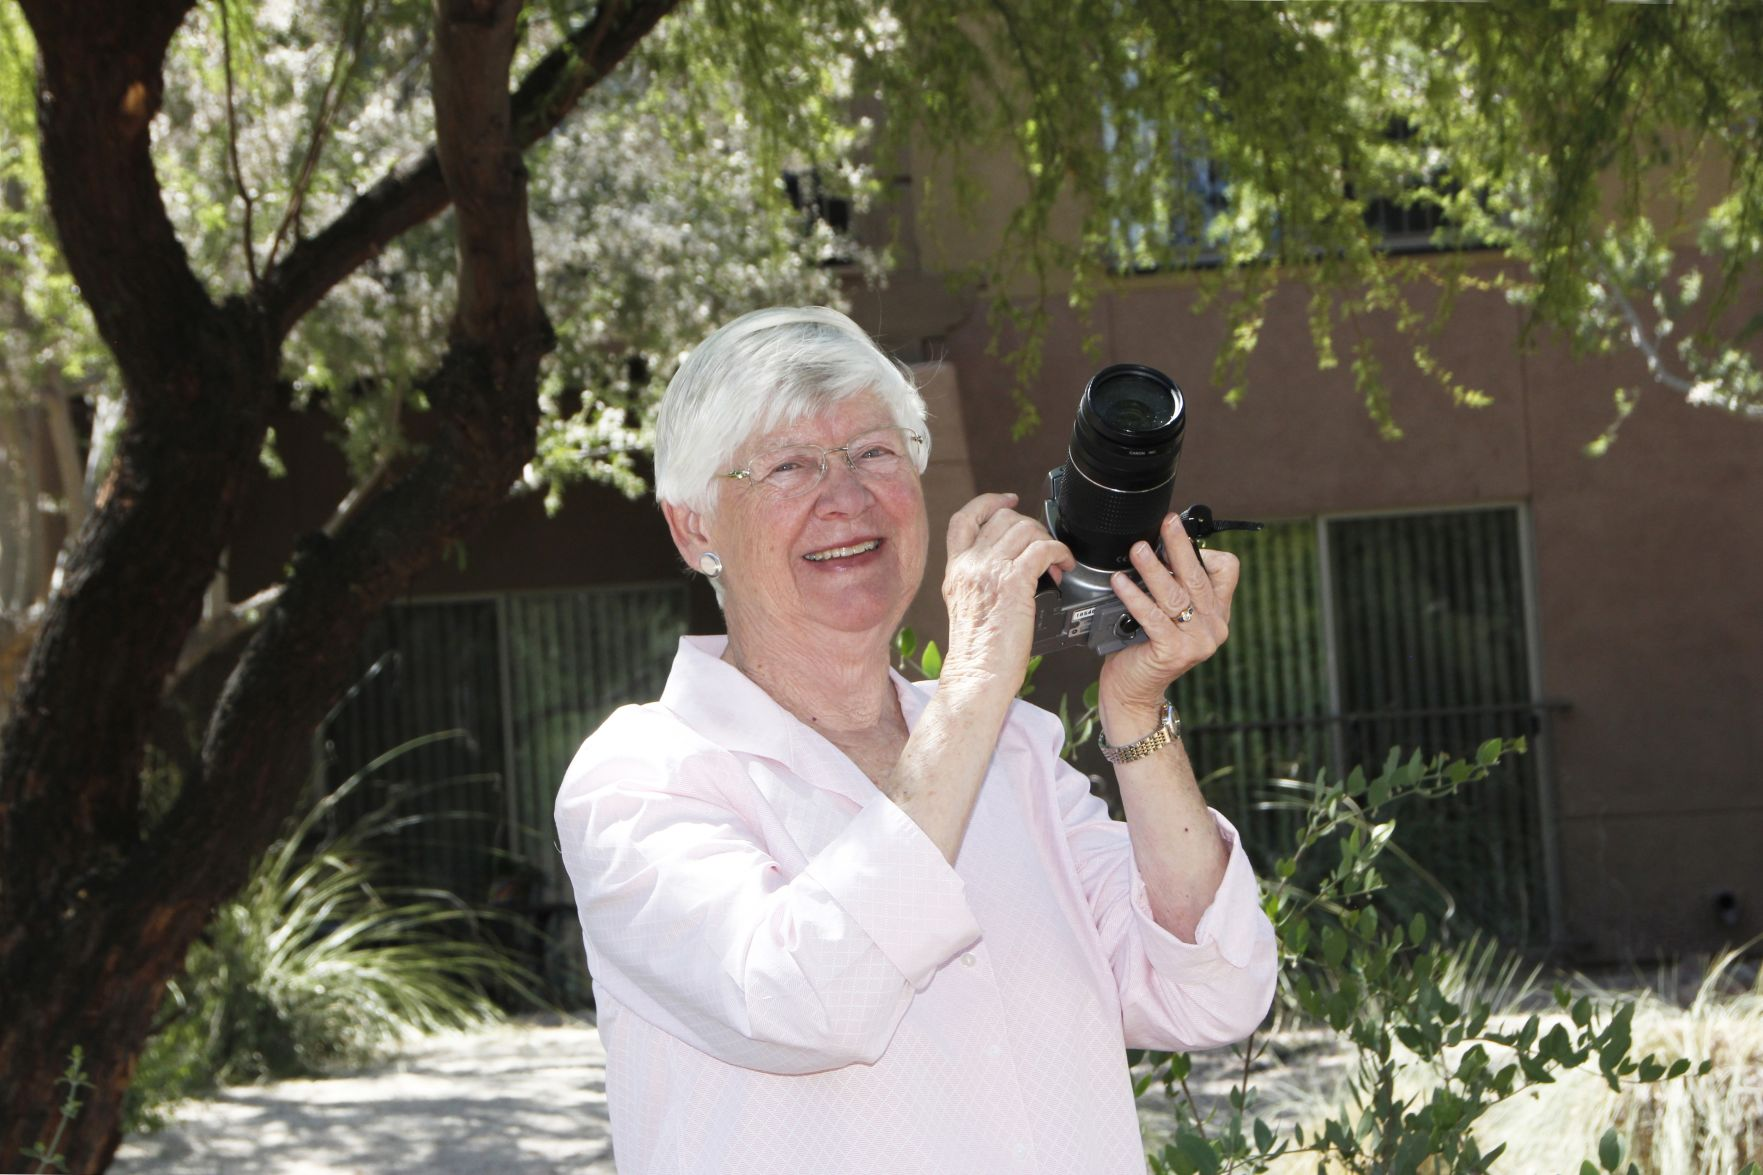 Aging Well: Splendido Resident Blends Photography Skills with a Lifelong Love of Nature | Tucson Local Media